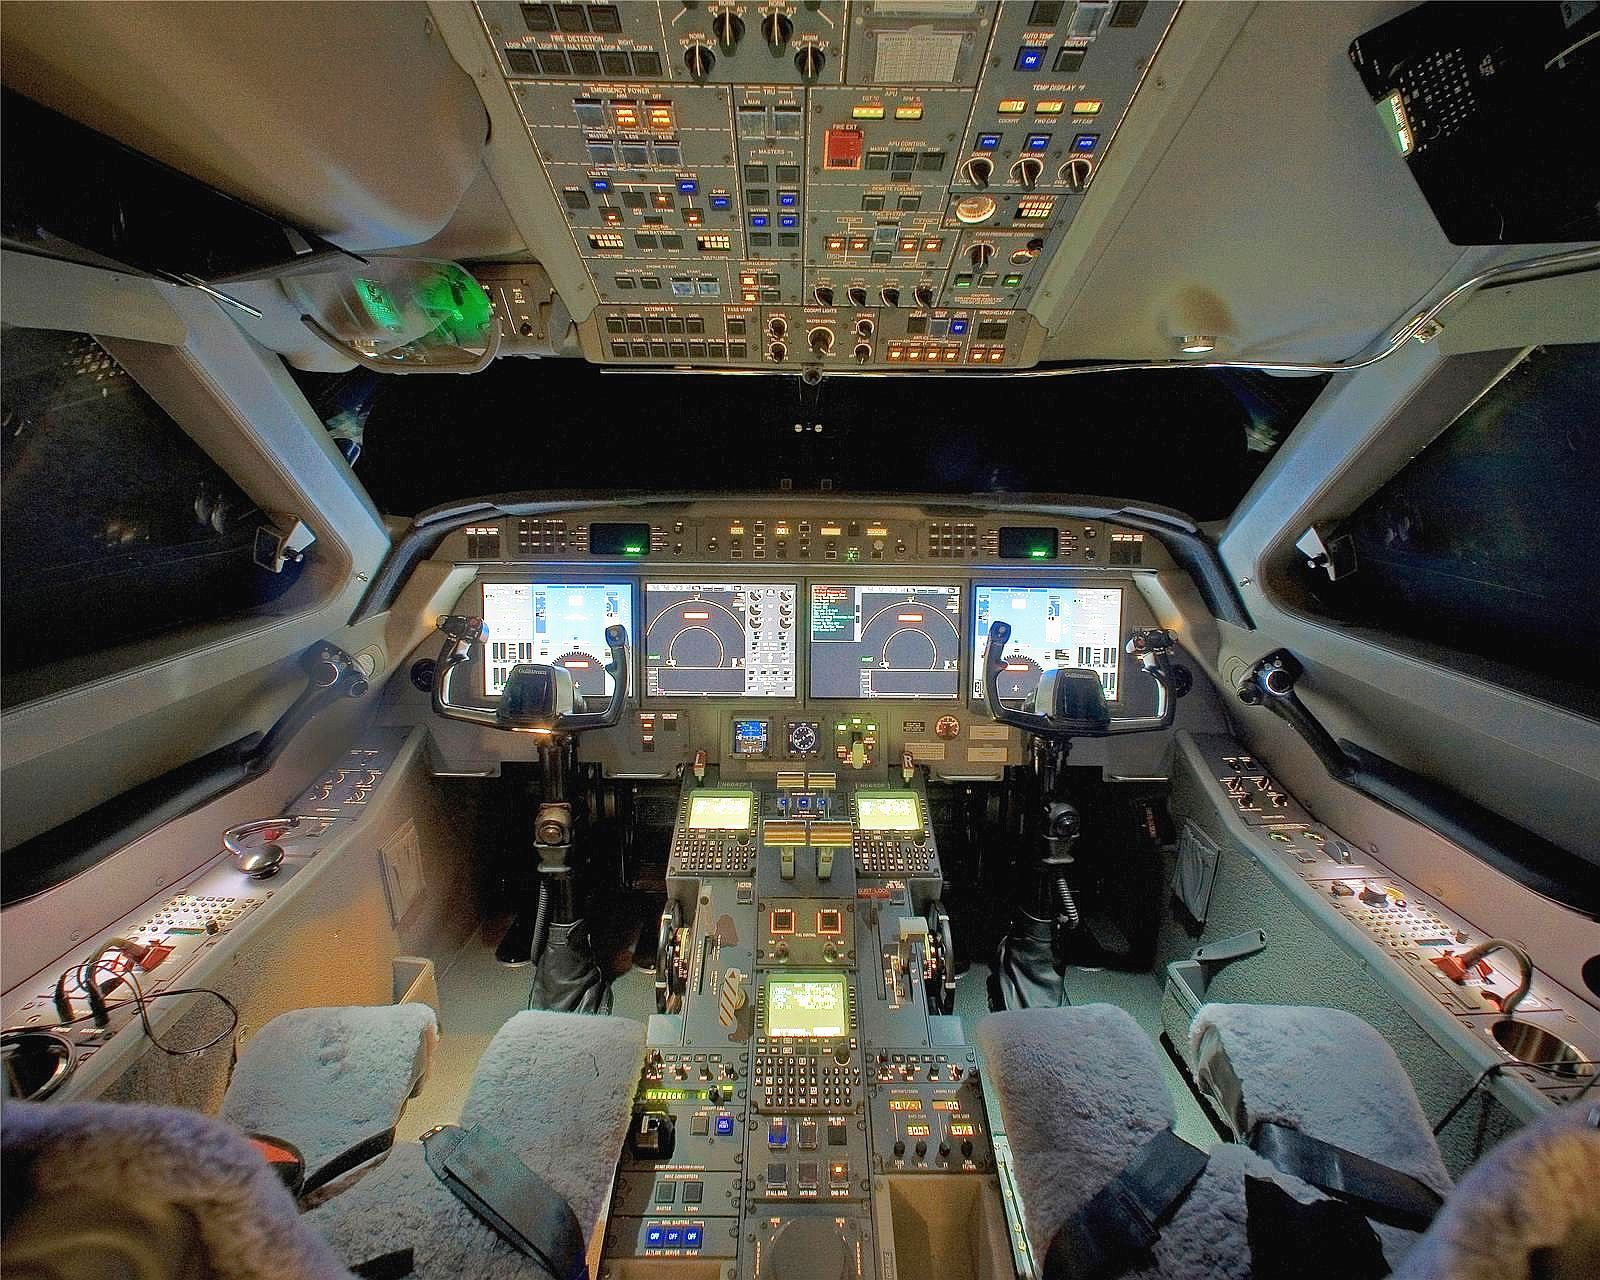 Inside the Gulfstream G650 Did you know it costs an average of